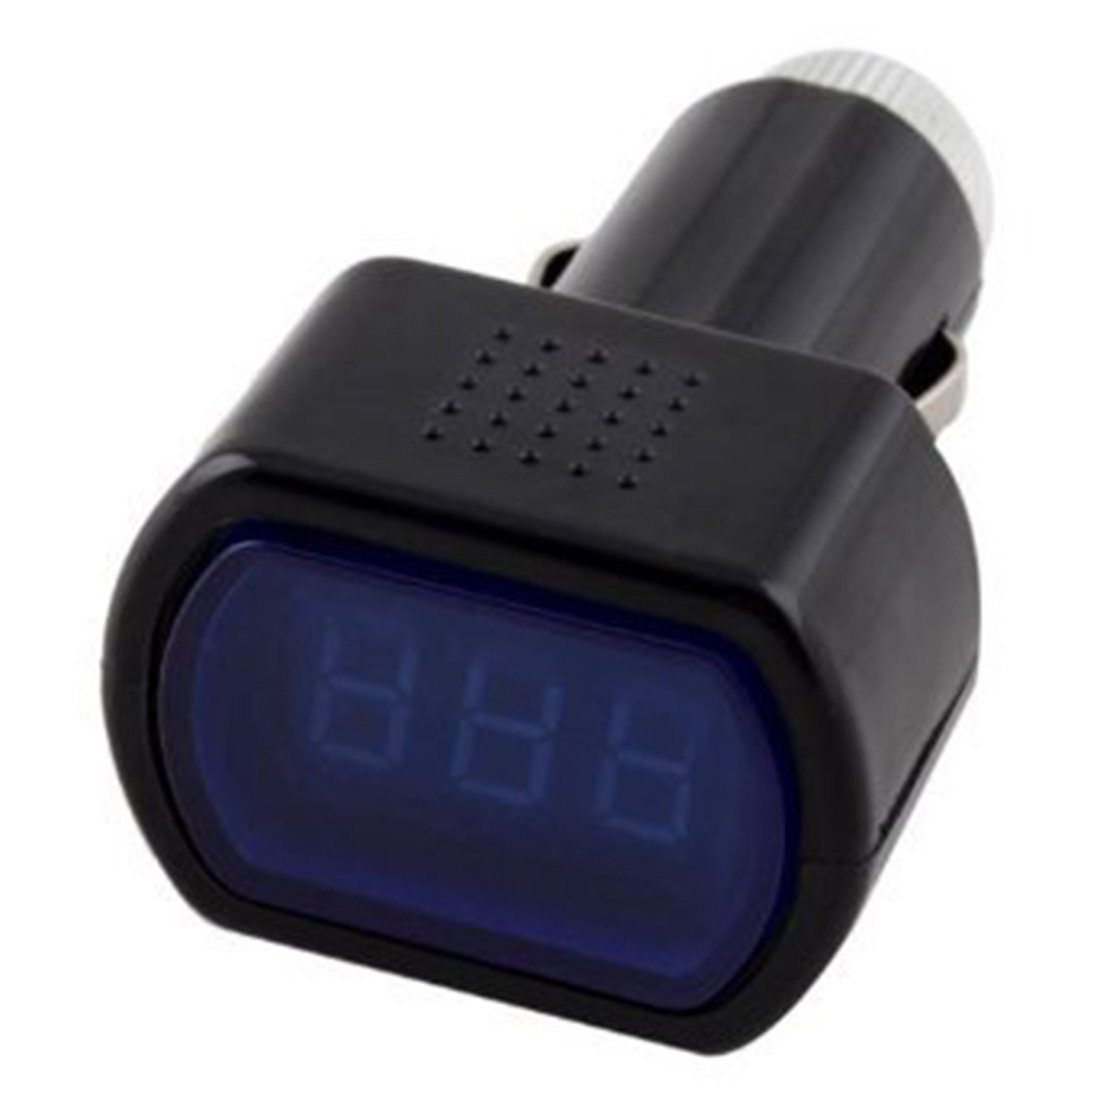 Dewtreetali auto styling 1x Auto Lkw <font><b>LCD</b></font> Zigarette Leichter Voltage Digital Panel Meter <font><b>Voltmeter</b></font>-Monitor image